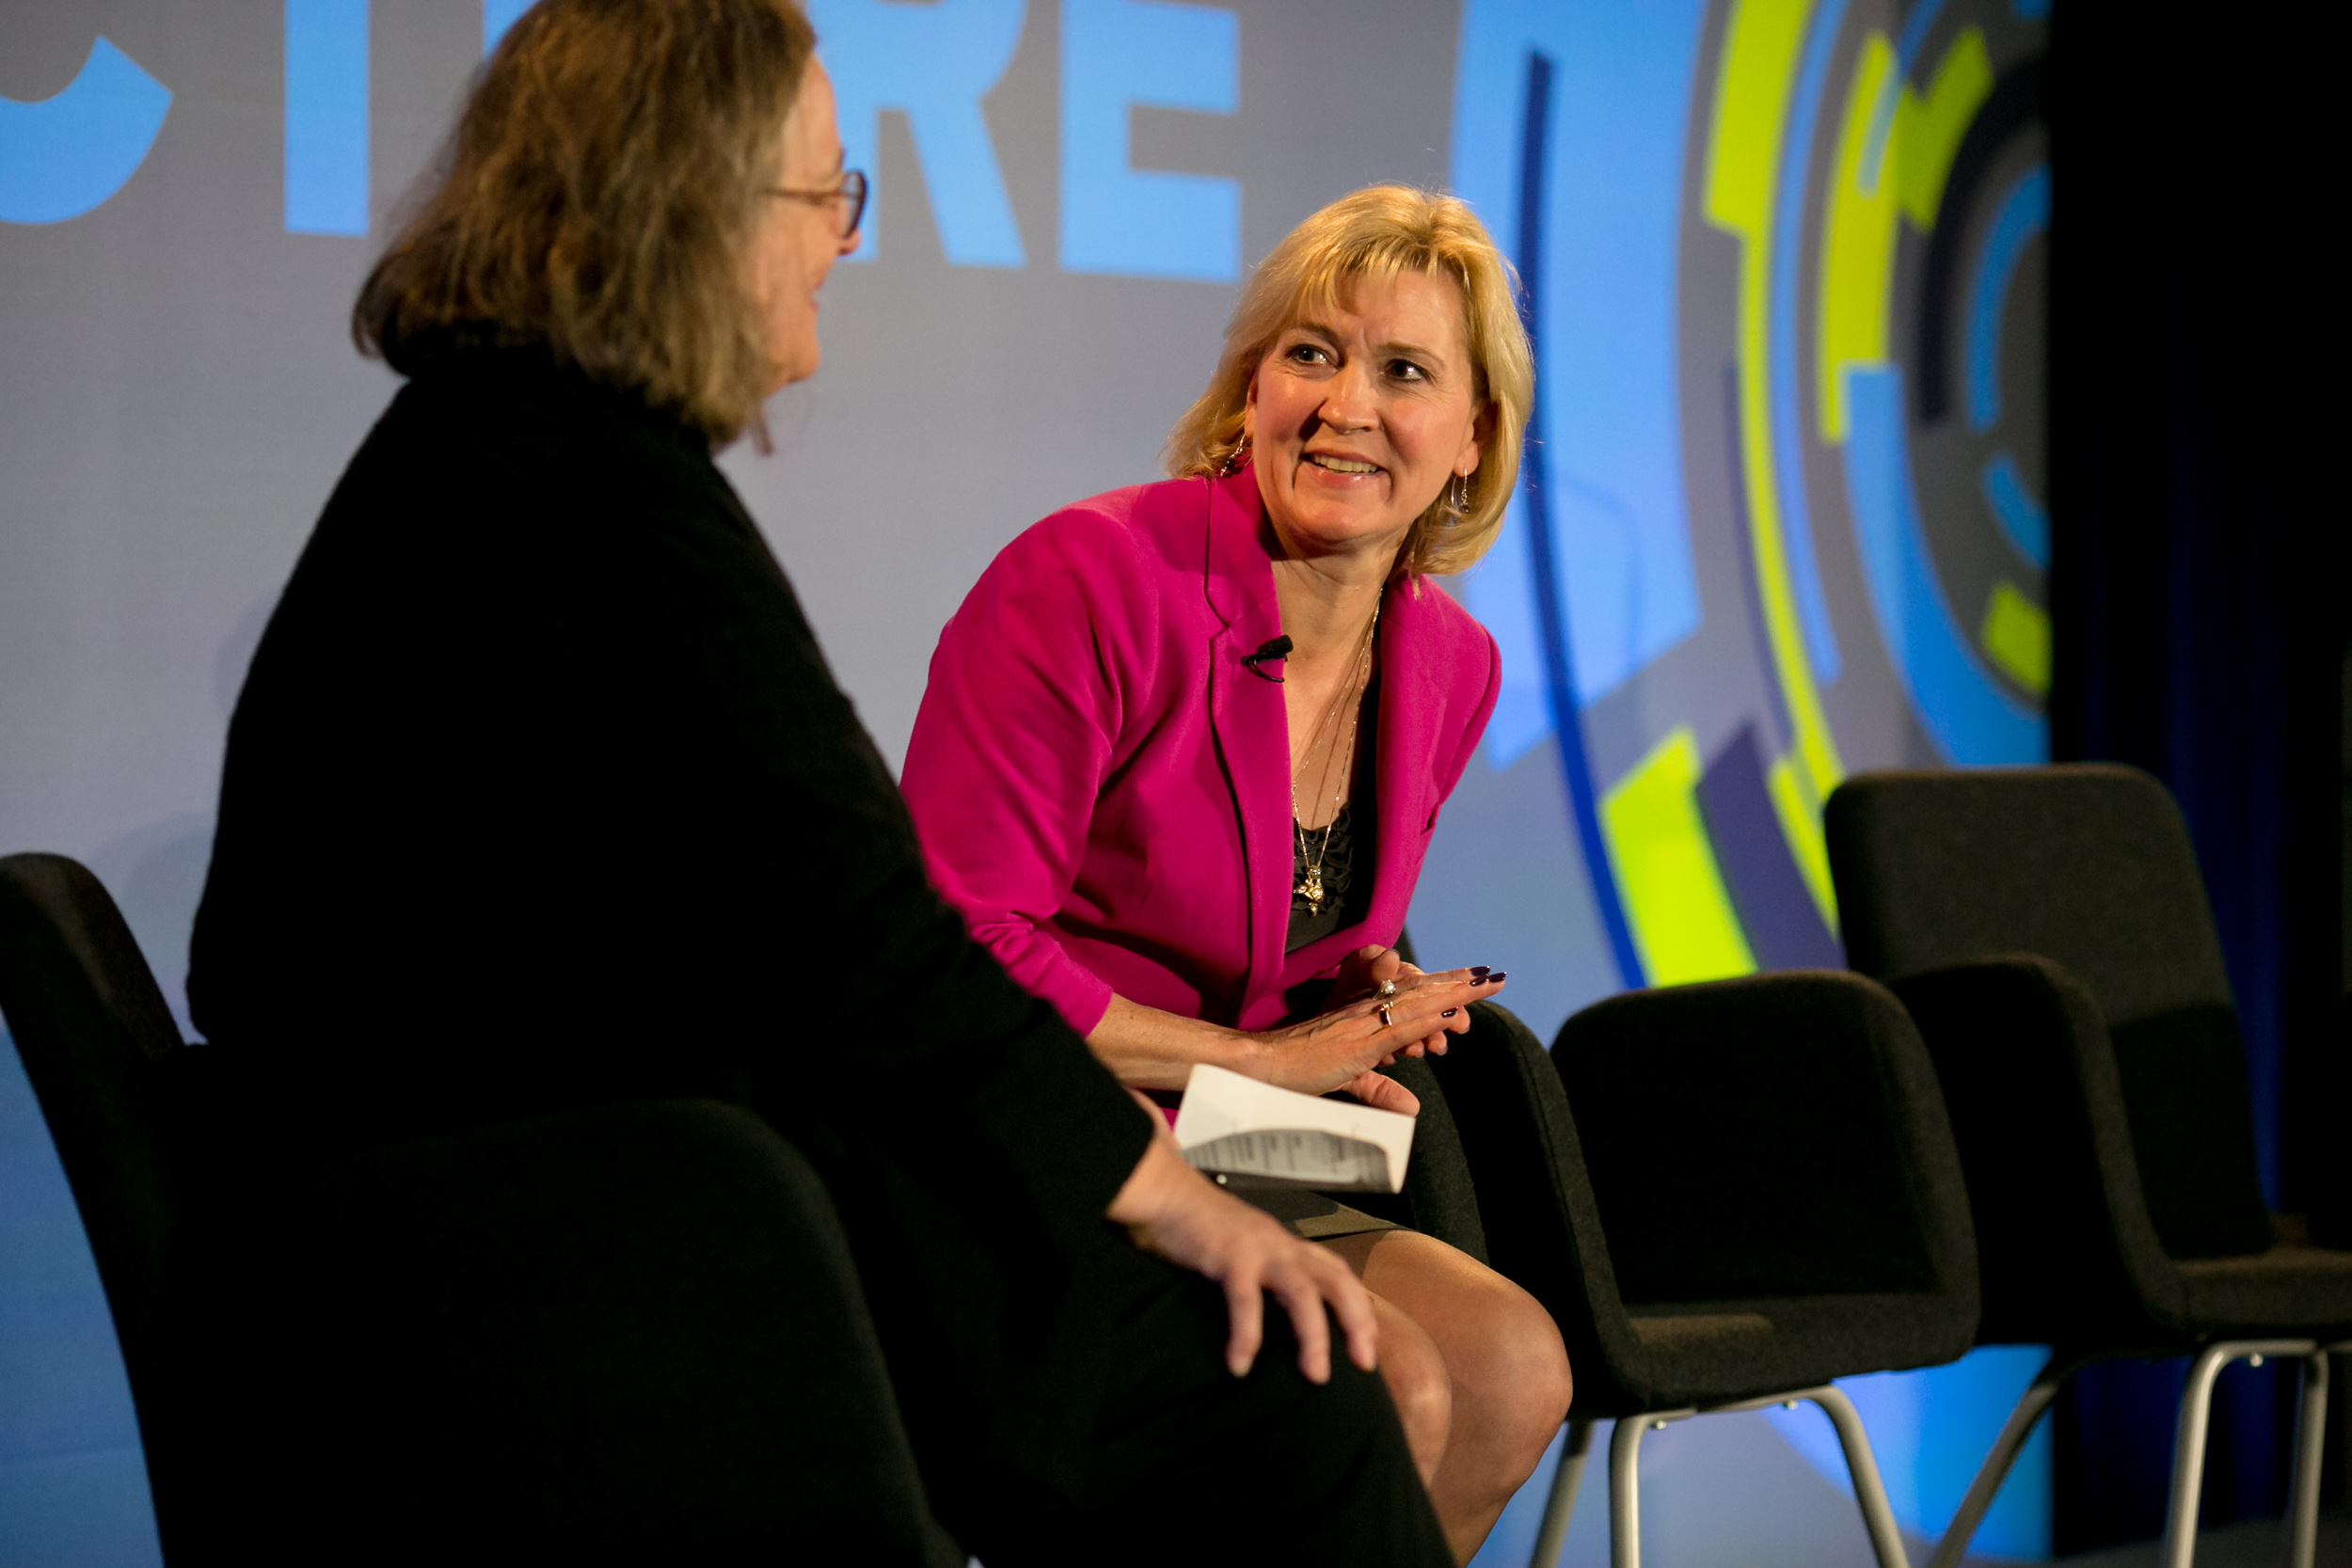 Barb Darrow (left) and Arlette Hart from the FBI (right) at Structure 2015 in Stan Francisco.